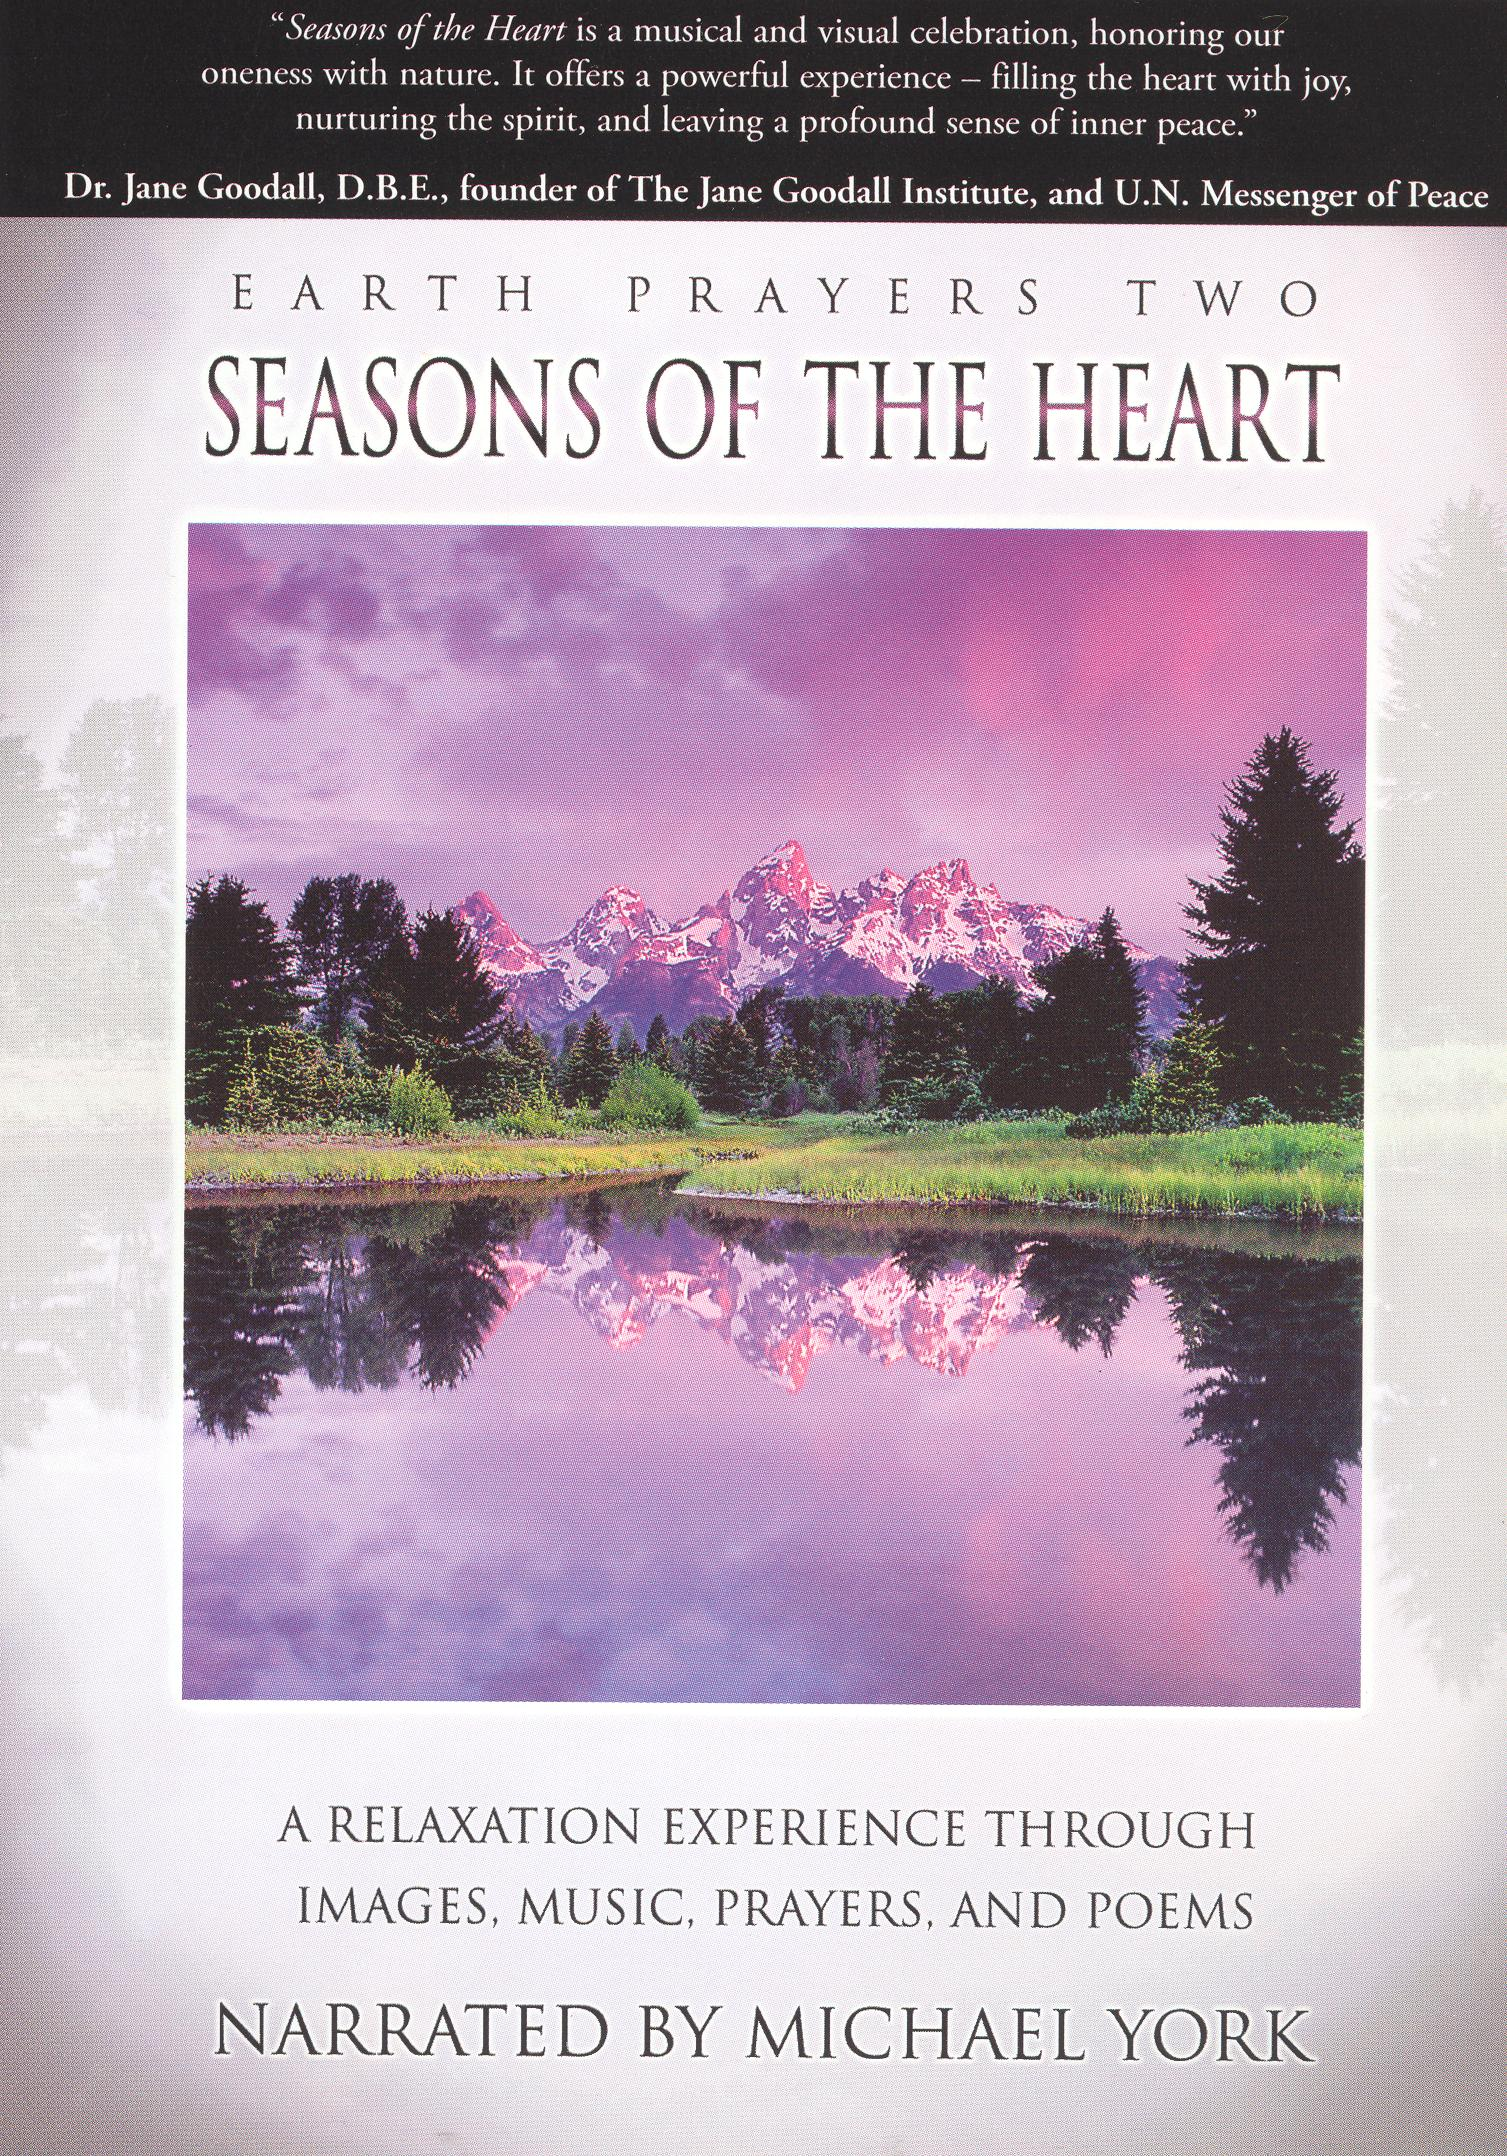 Earth Prayers Two: Seasons of the Heart